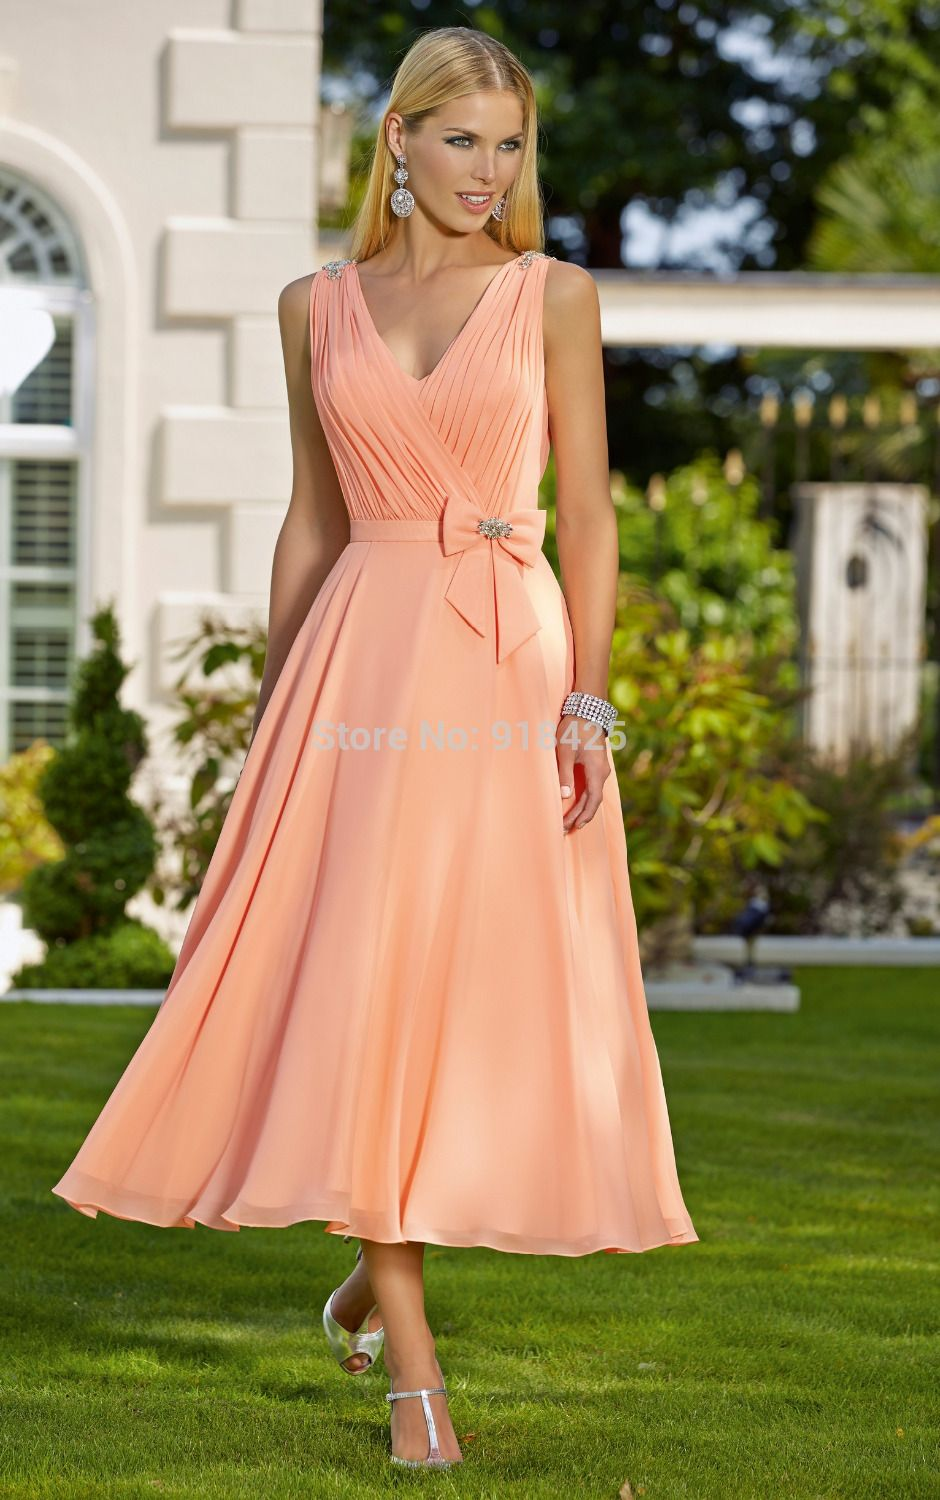 Popular peach colored bridesmaid dresses buy cheap peach colored explore tea length bridesmaid dresses and more ombrellifo Images